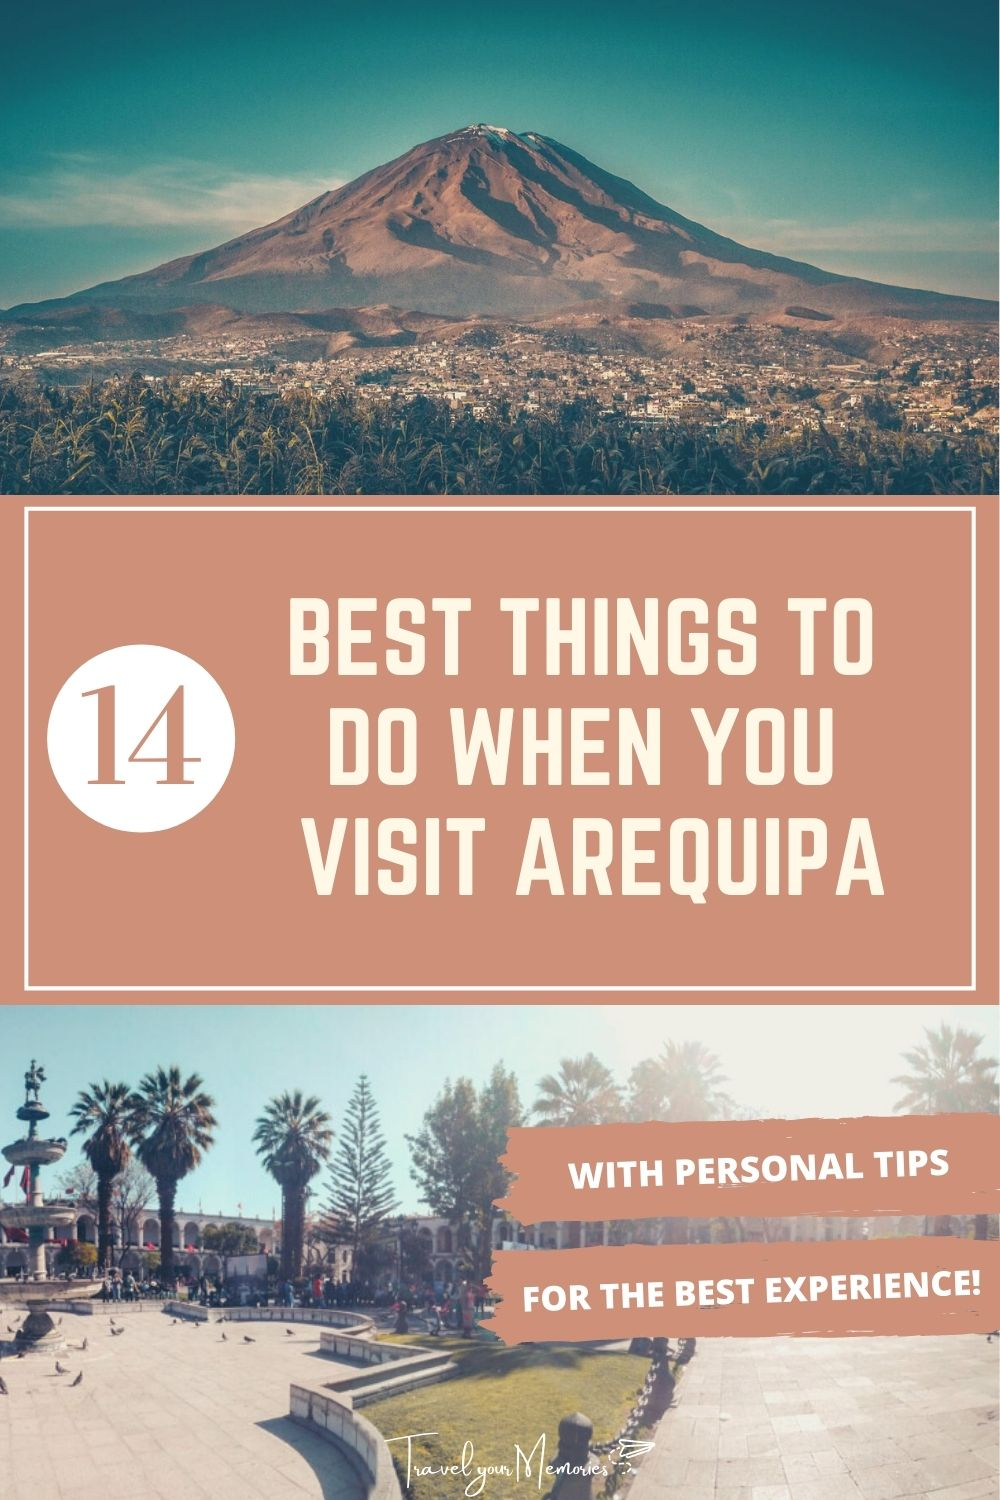 The #14 best things to do in Arequipa Peru